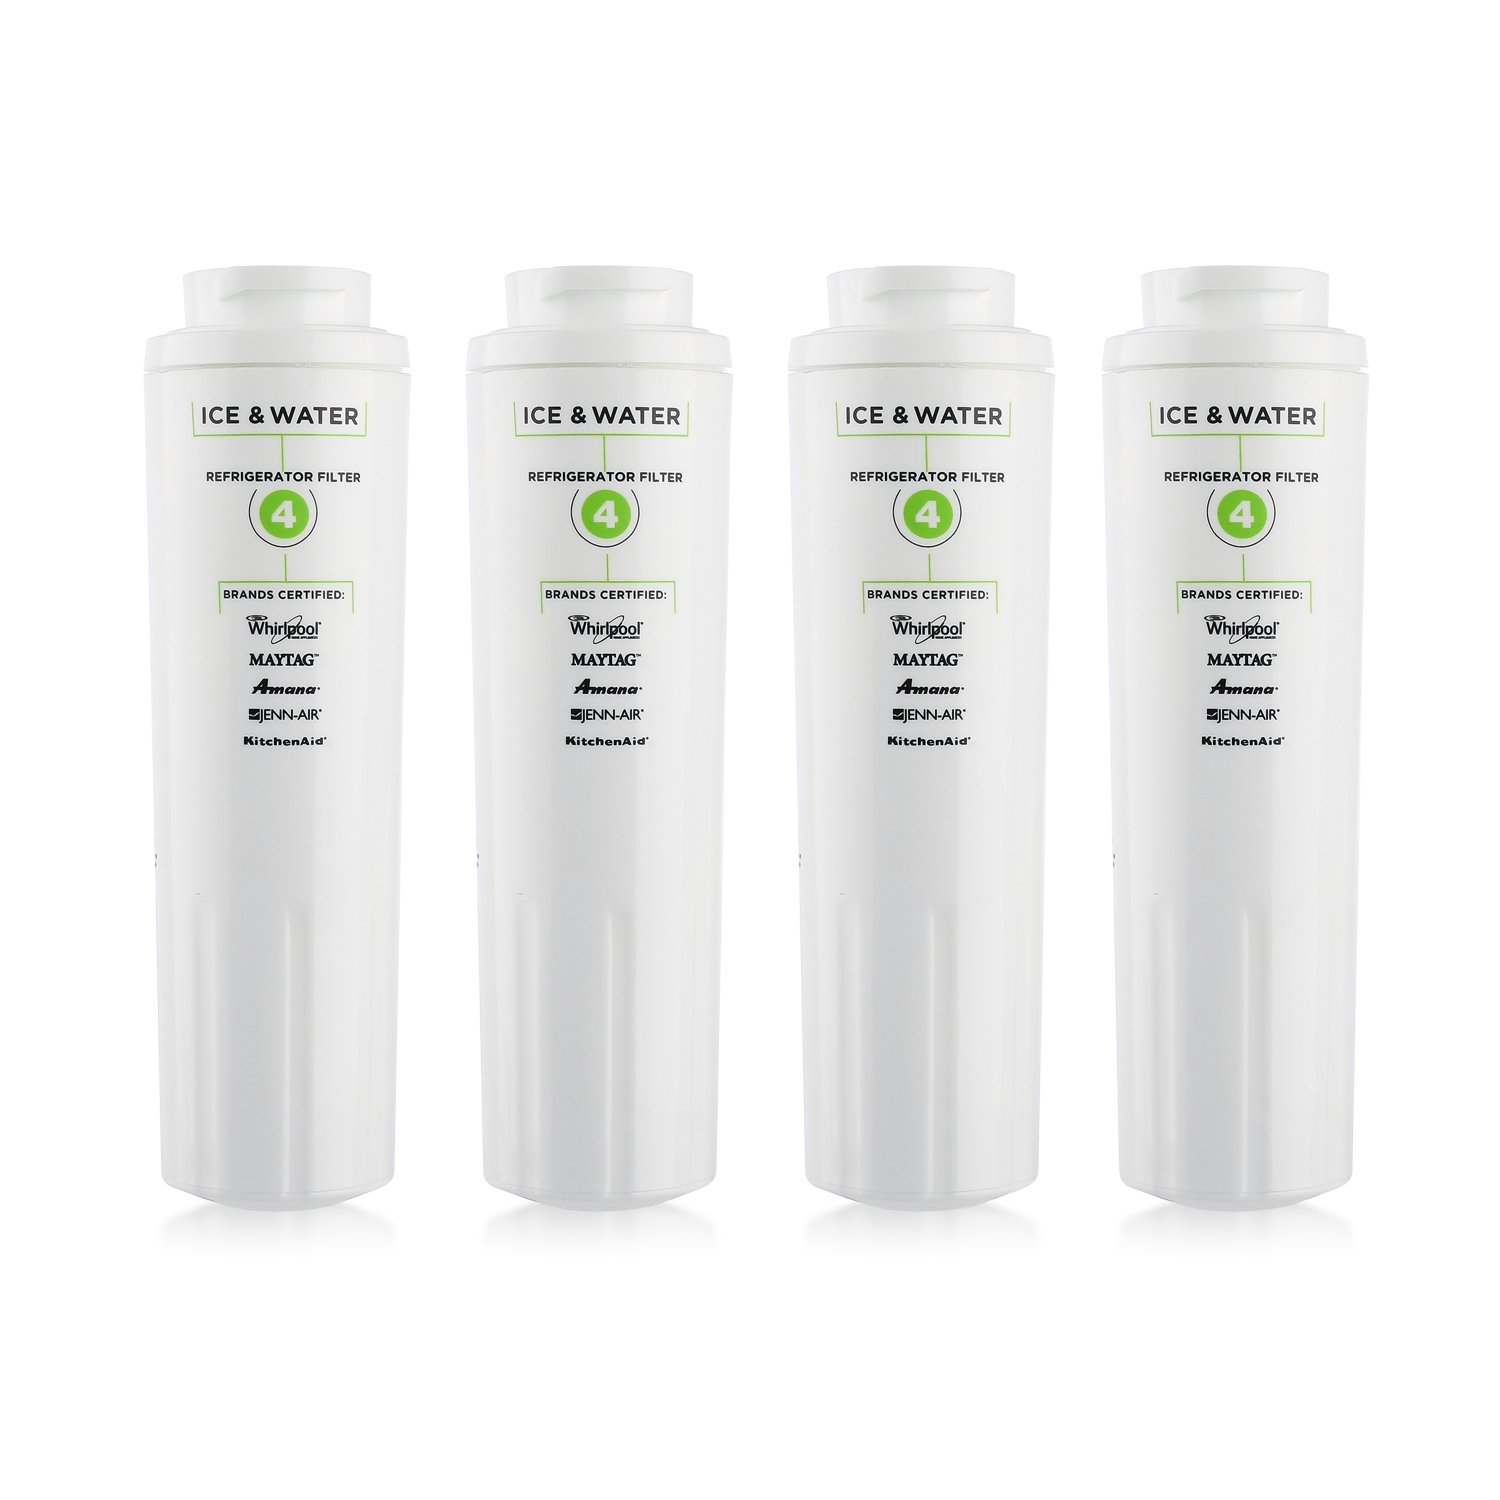 4 Count Refrigerator Water Filters 4 4396-/395 Replacement Water Filter for Kenmore 9084